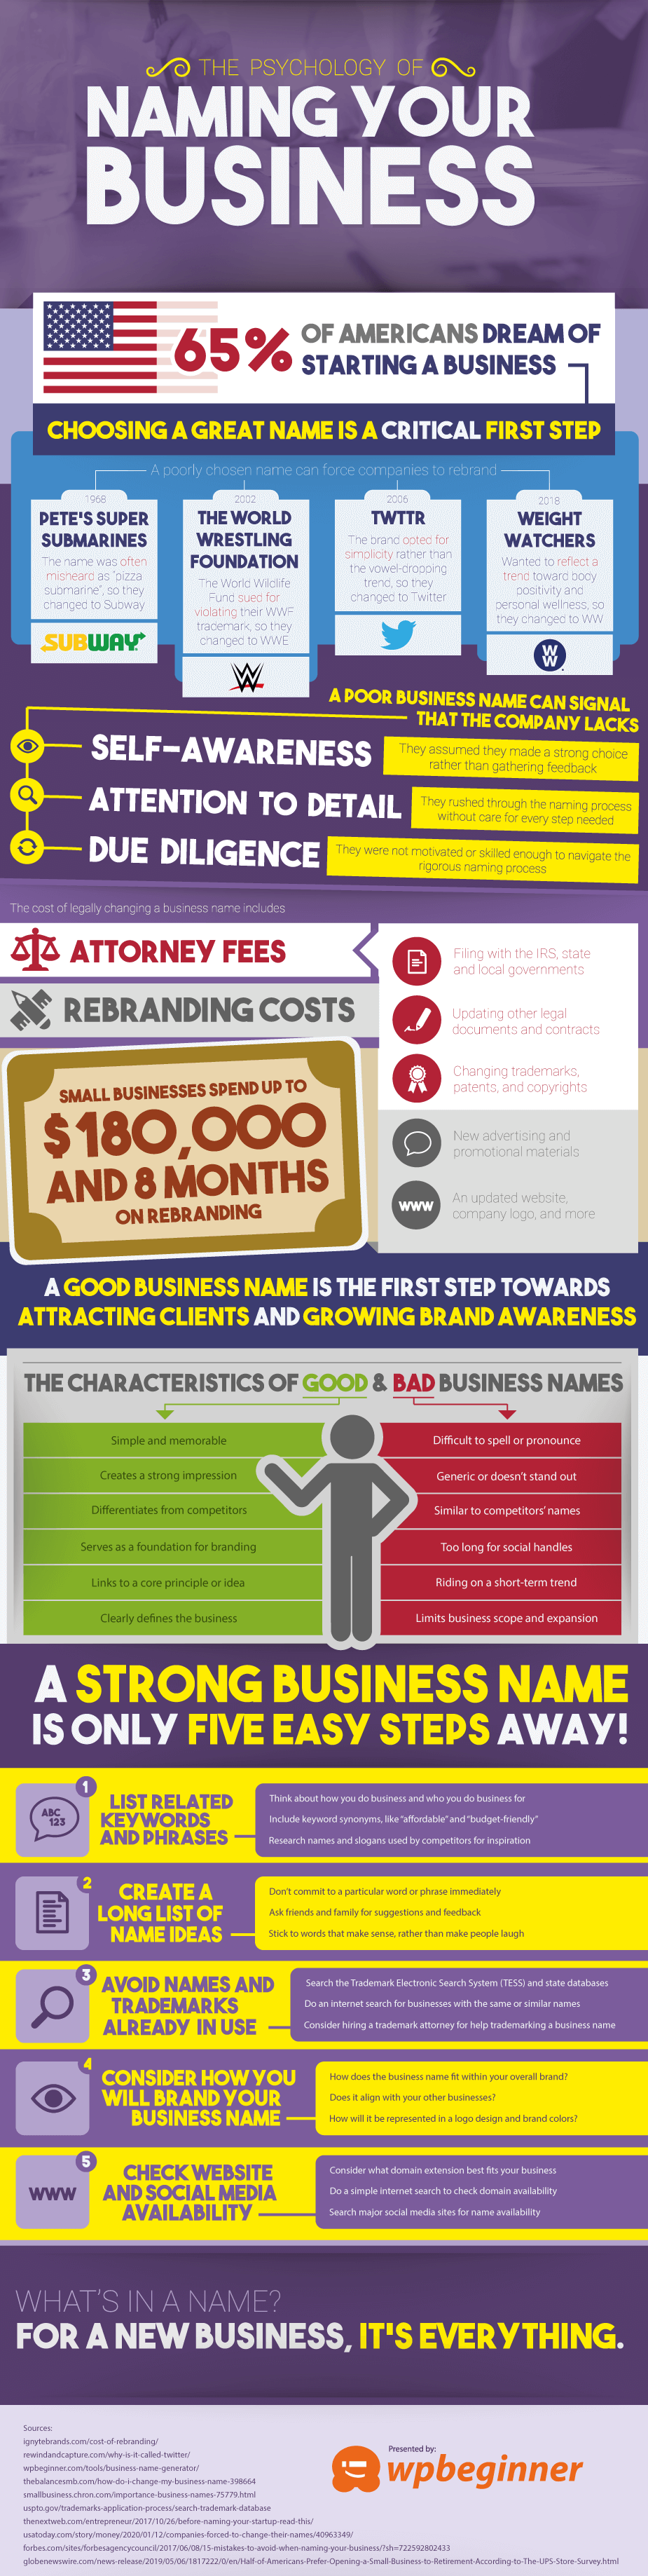 the psychology of naming your business (infographic)